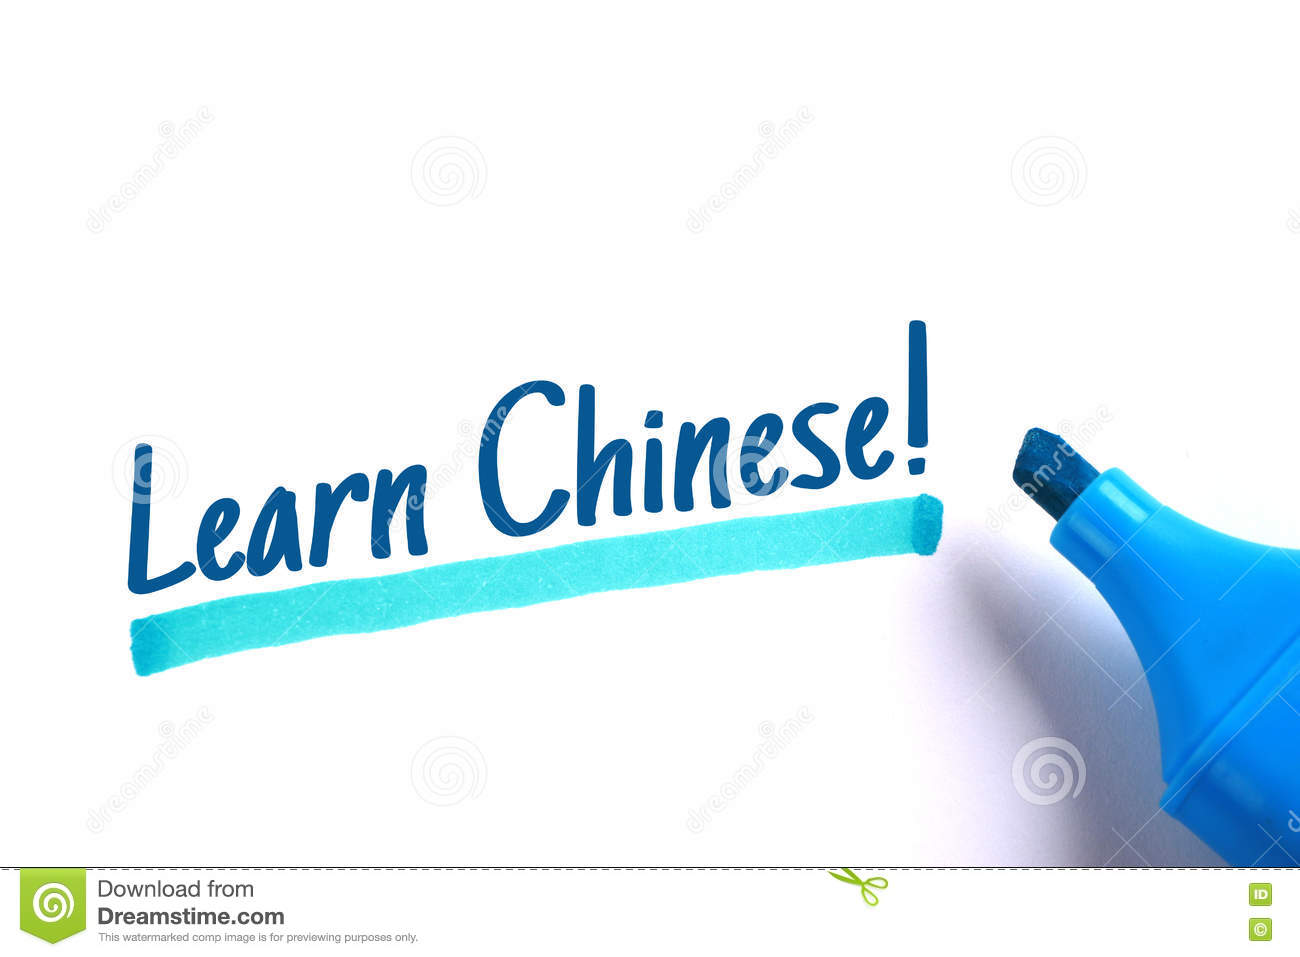 Top Ten YouTube Channels for Learning Mandarin Chinese